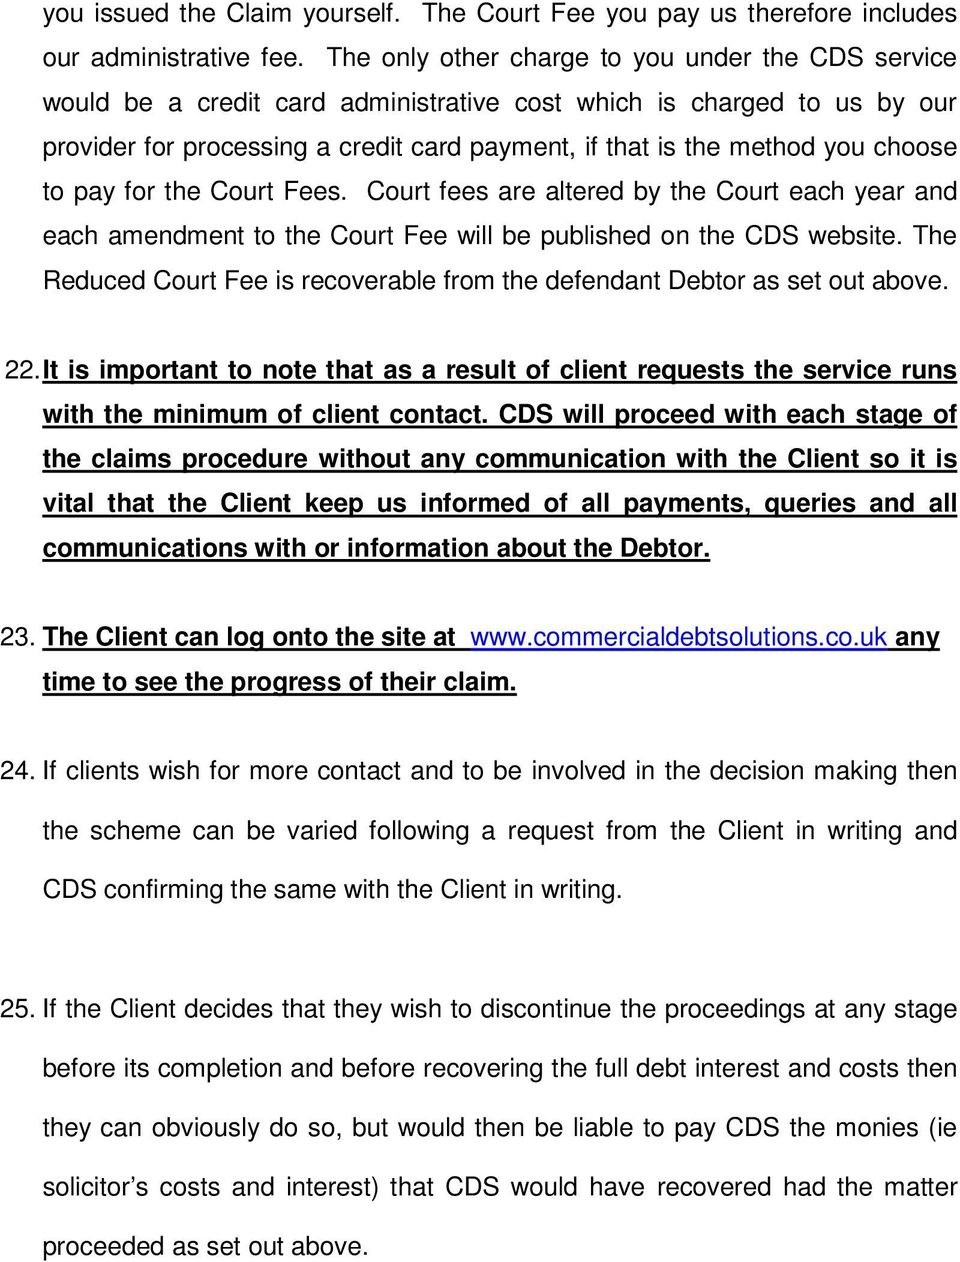 choose to pay for the Court Fees. Court fees are altered by the Court each year and each amendment to the Court Fee will be published on the CDS website.